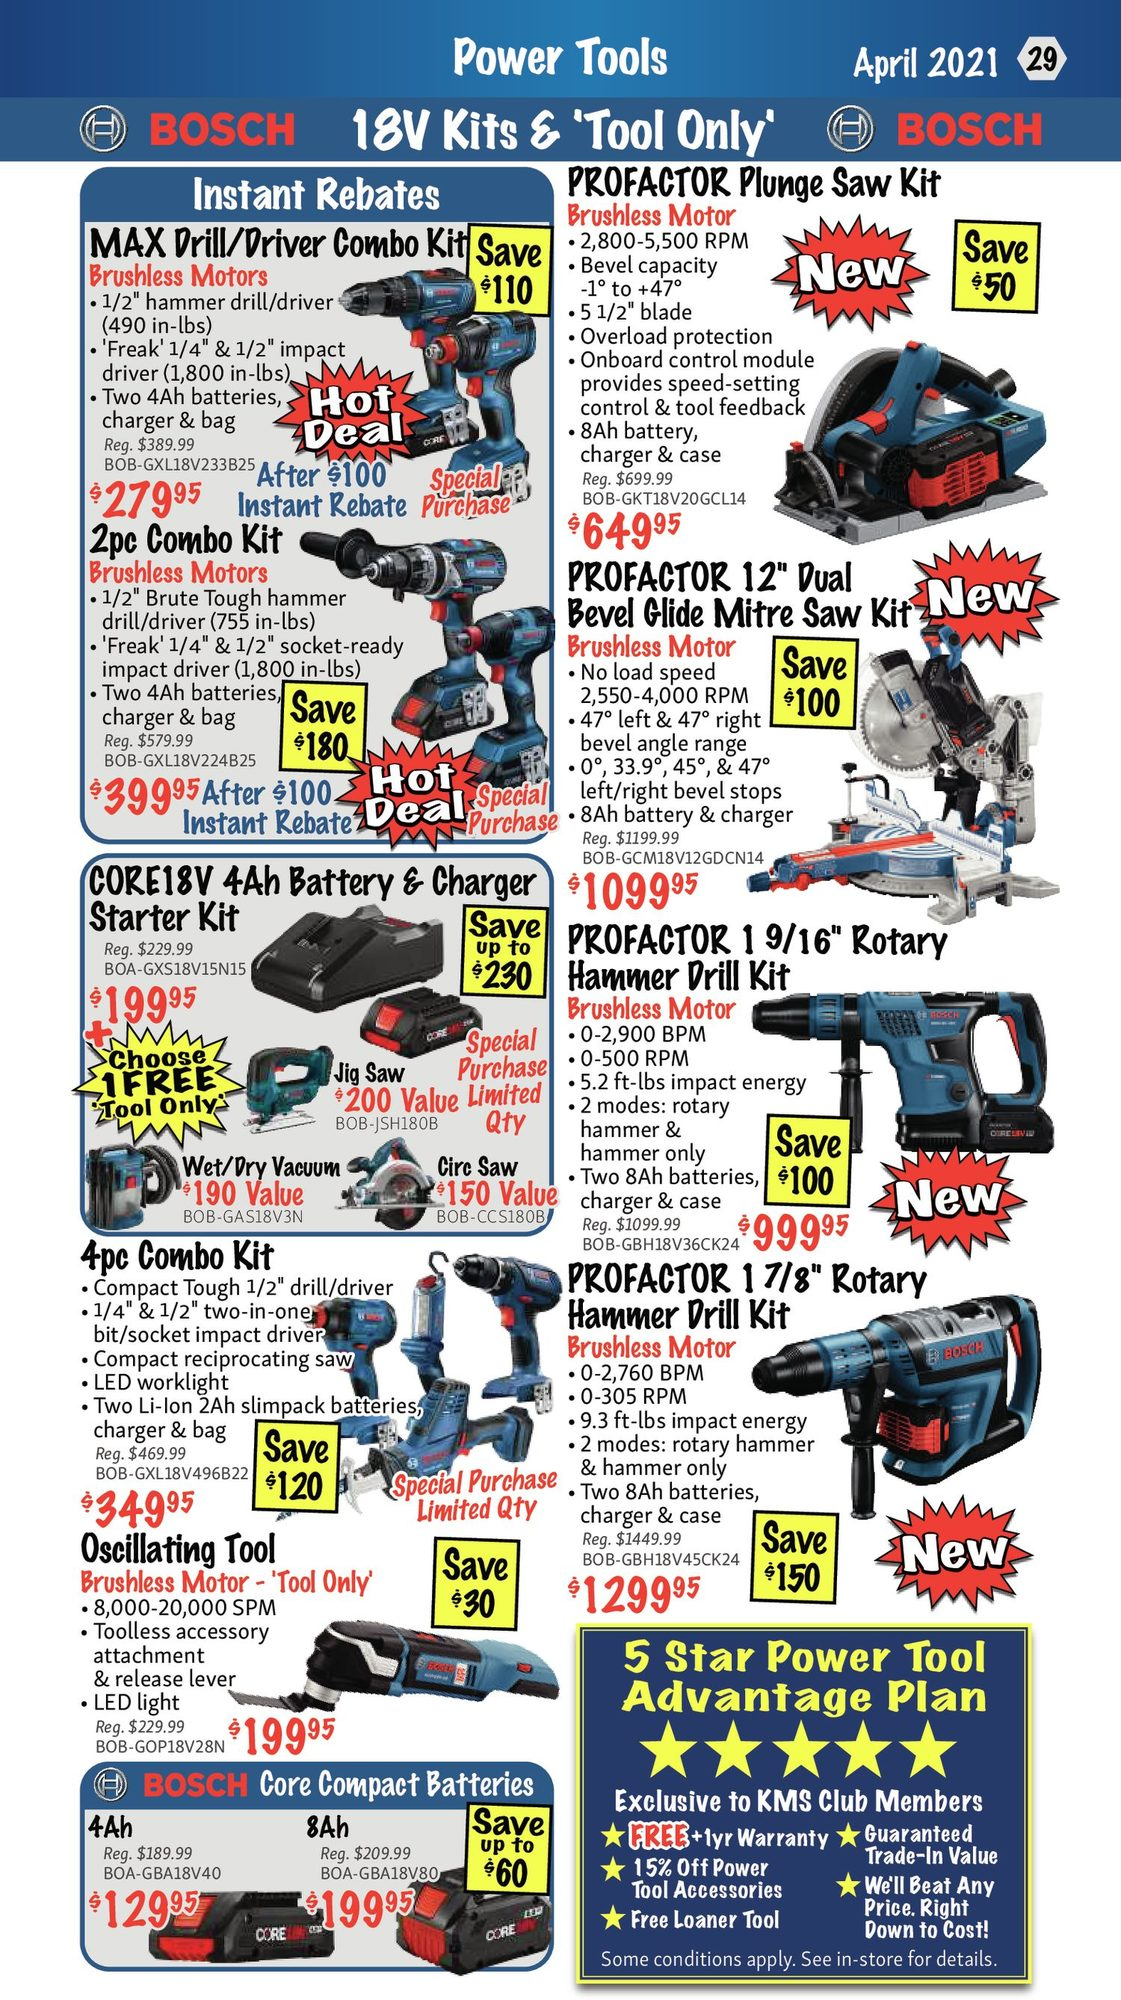 KMS Tools - Hand Tools, Air Tools & Compressor Sale - Page 29